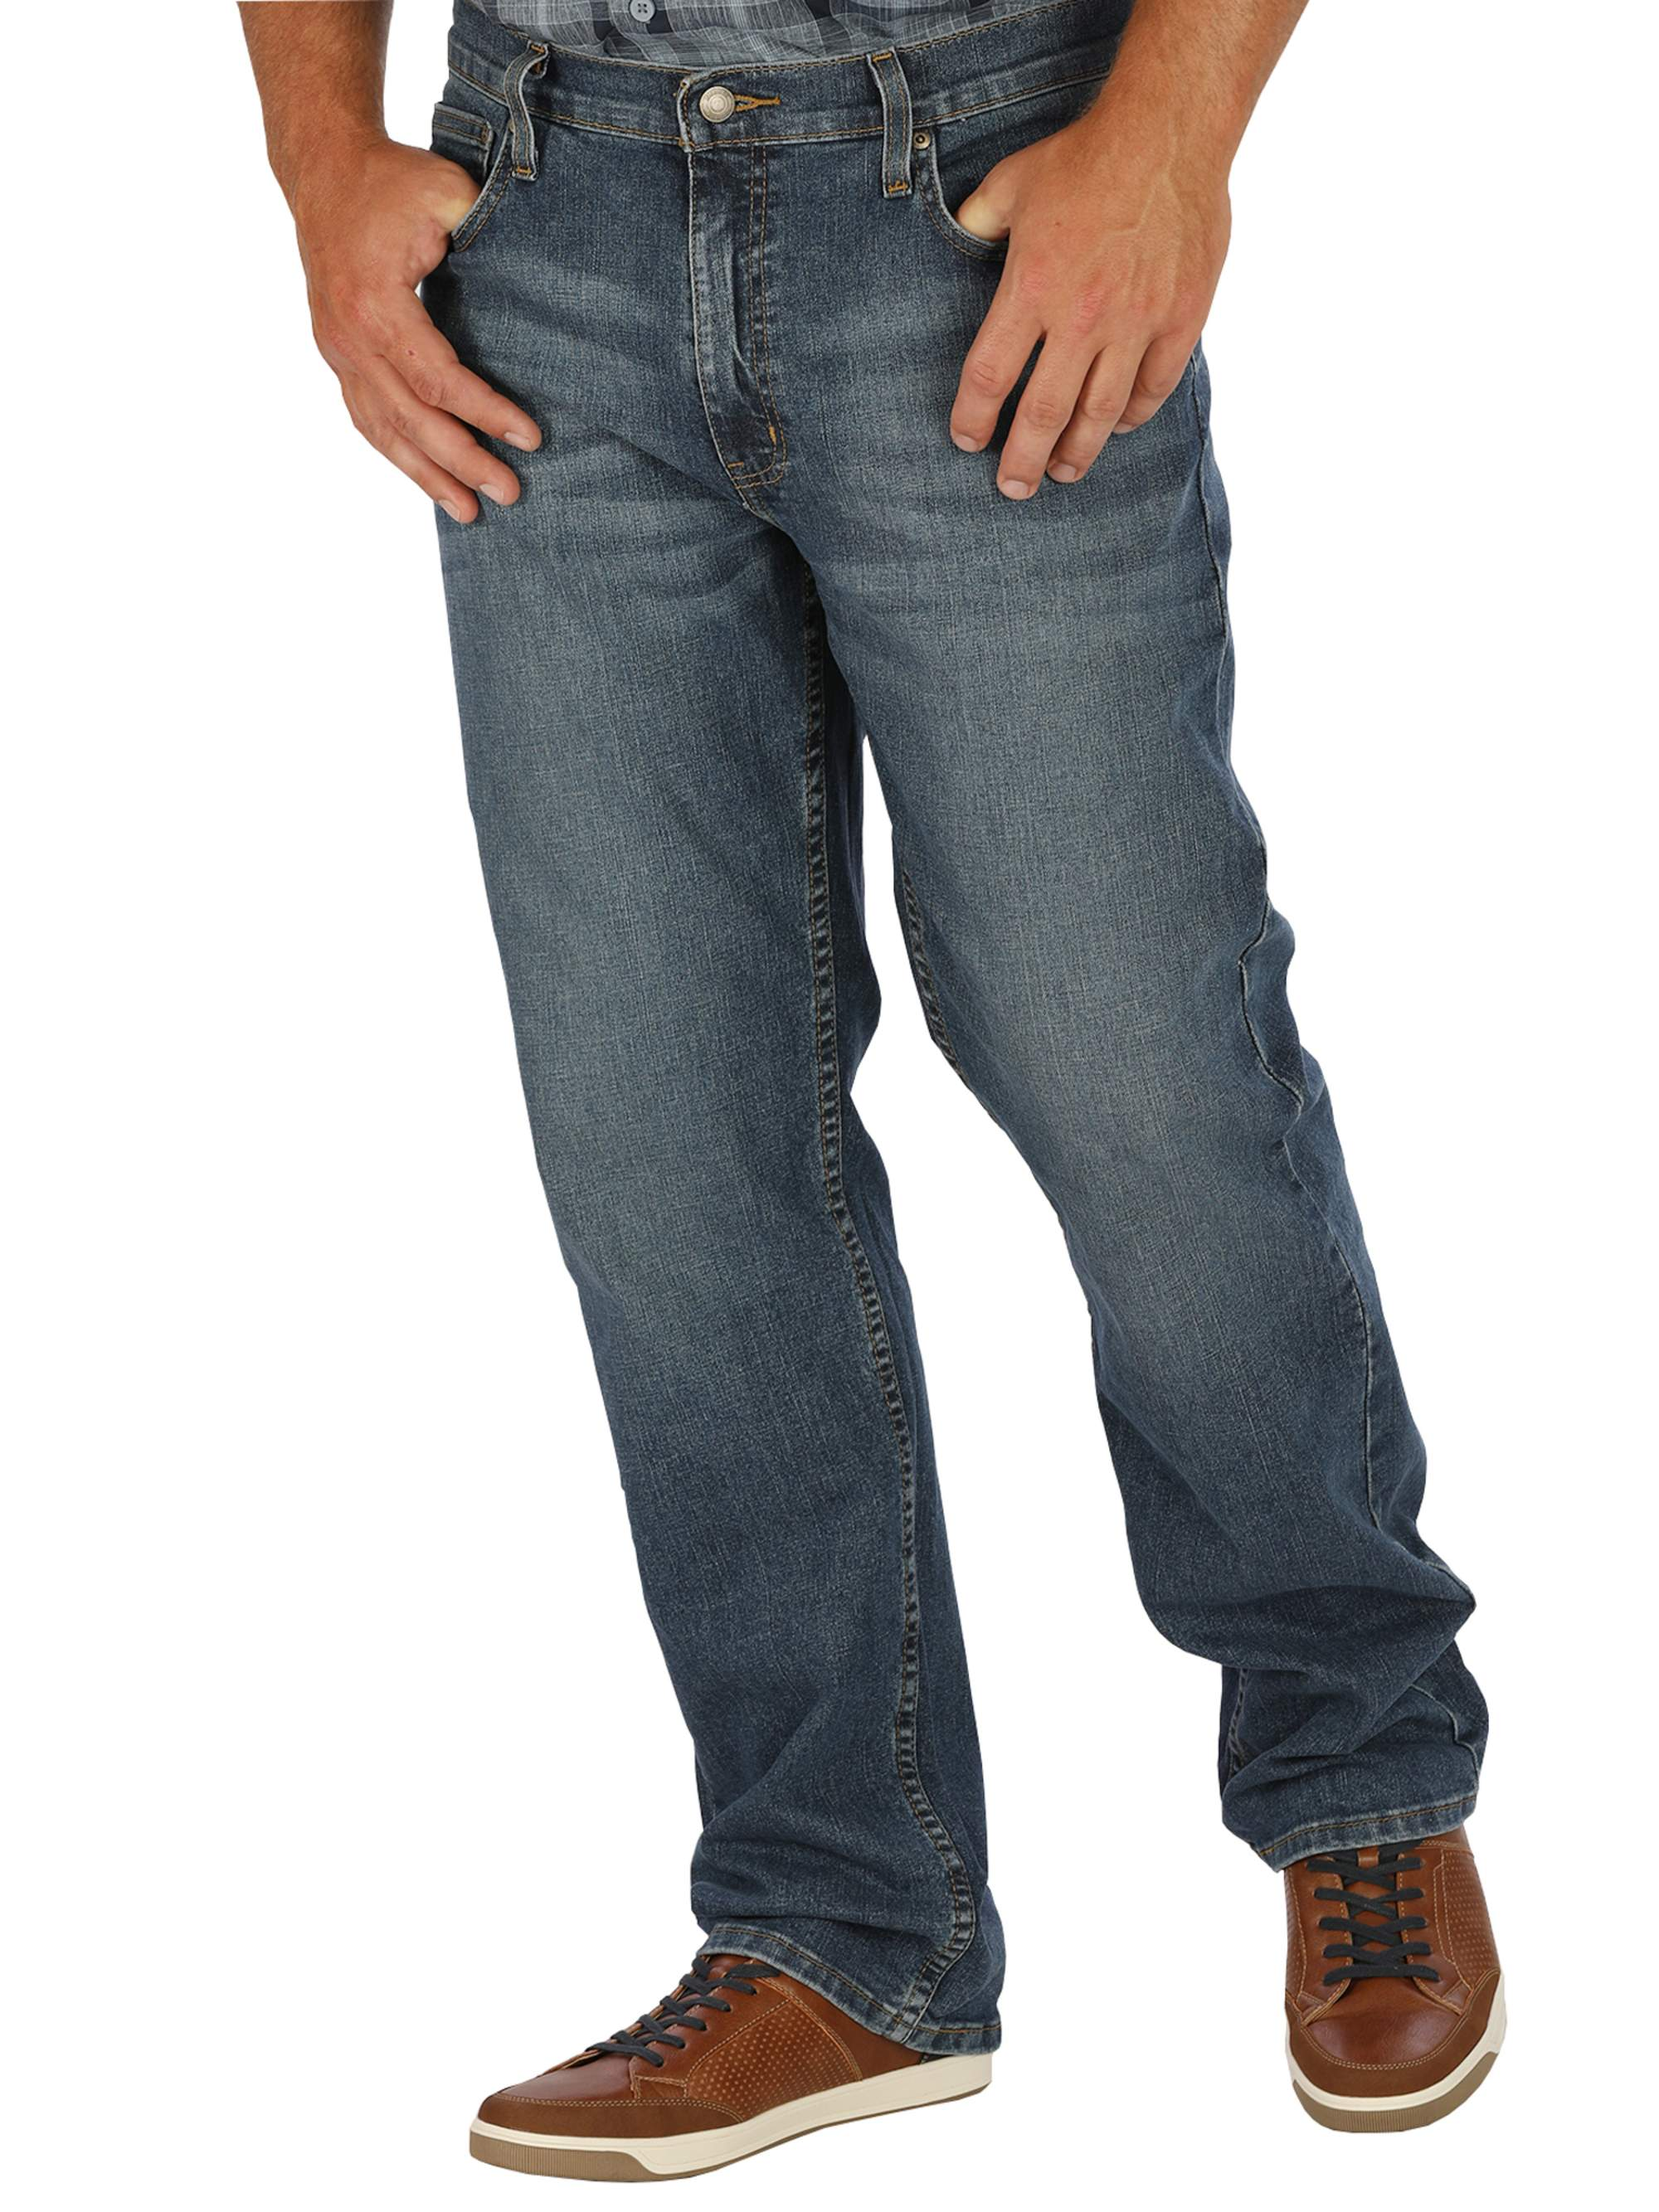 CLEARANCE: GEORGE Men's Athletic Flex Fit Jean (GM09509)-